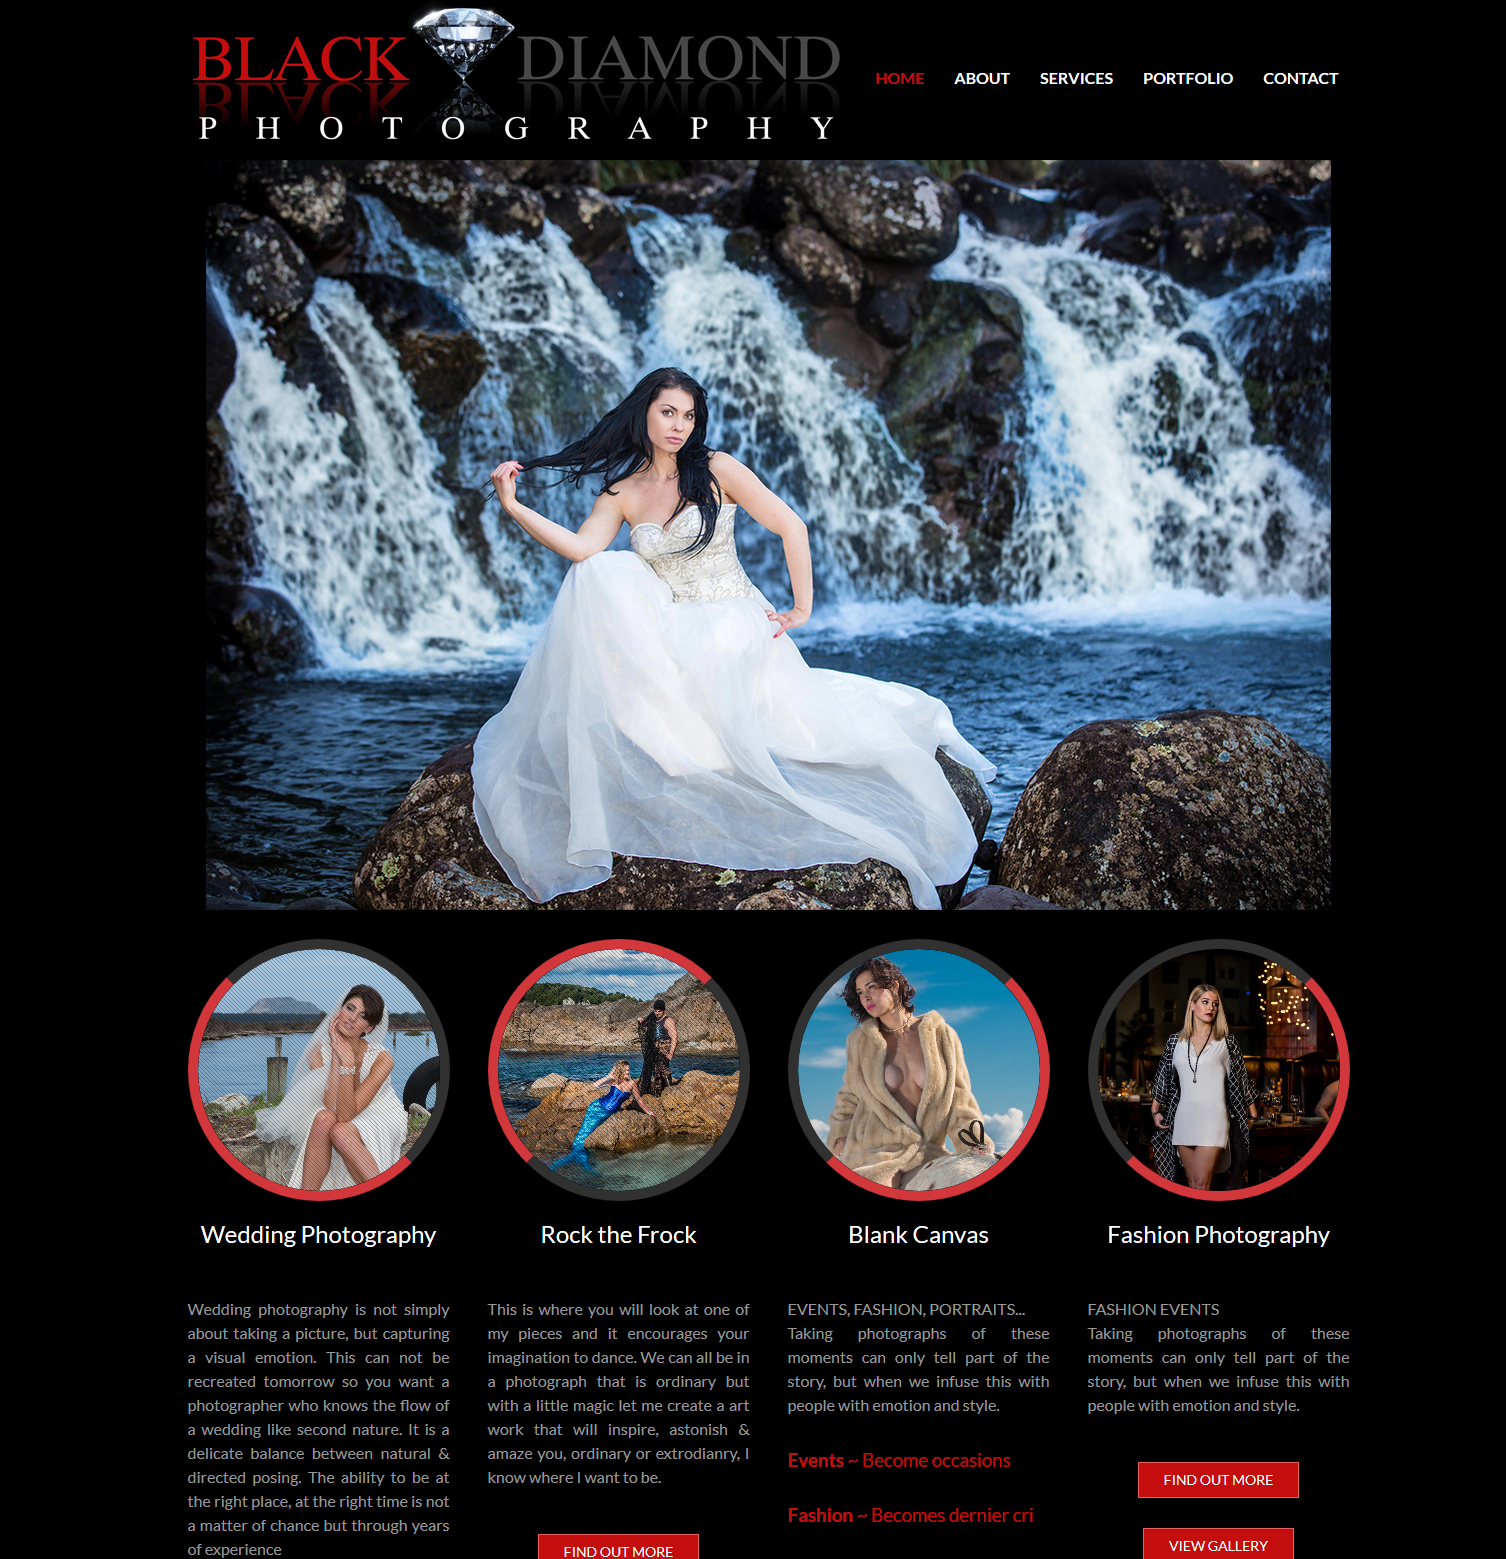 www.blackdiamondphotography.co.nz